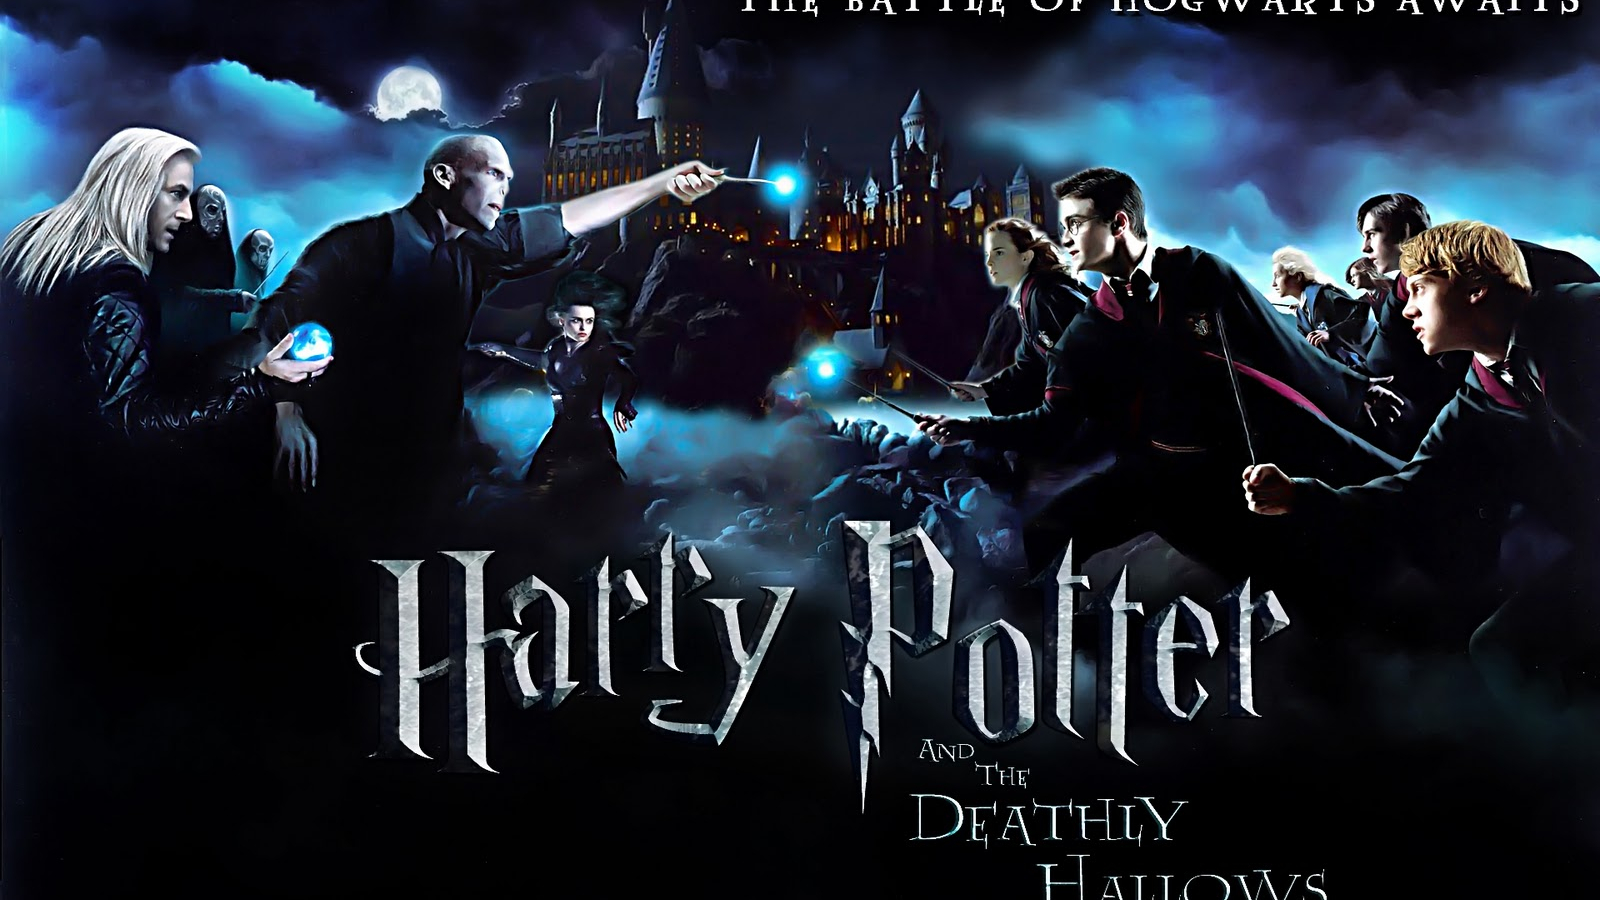 Free Download Wallpapers Harry Potter And The Deathly Hallows